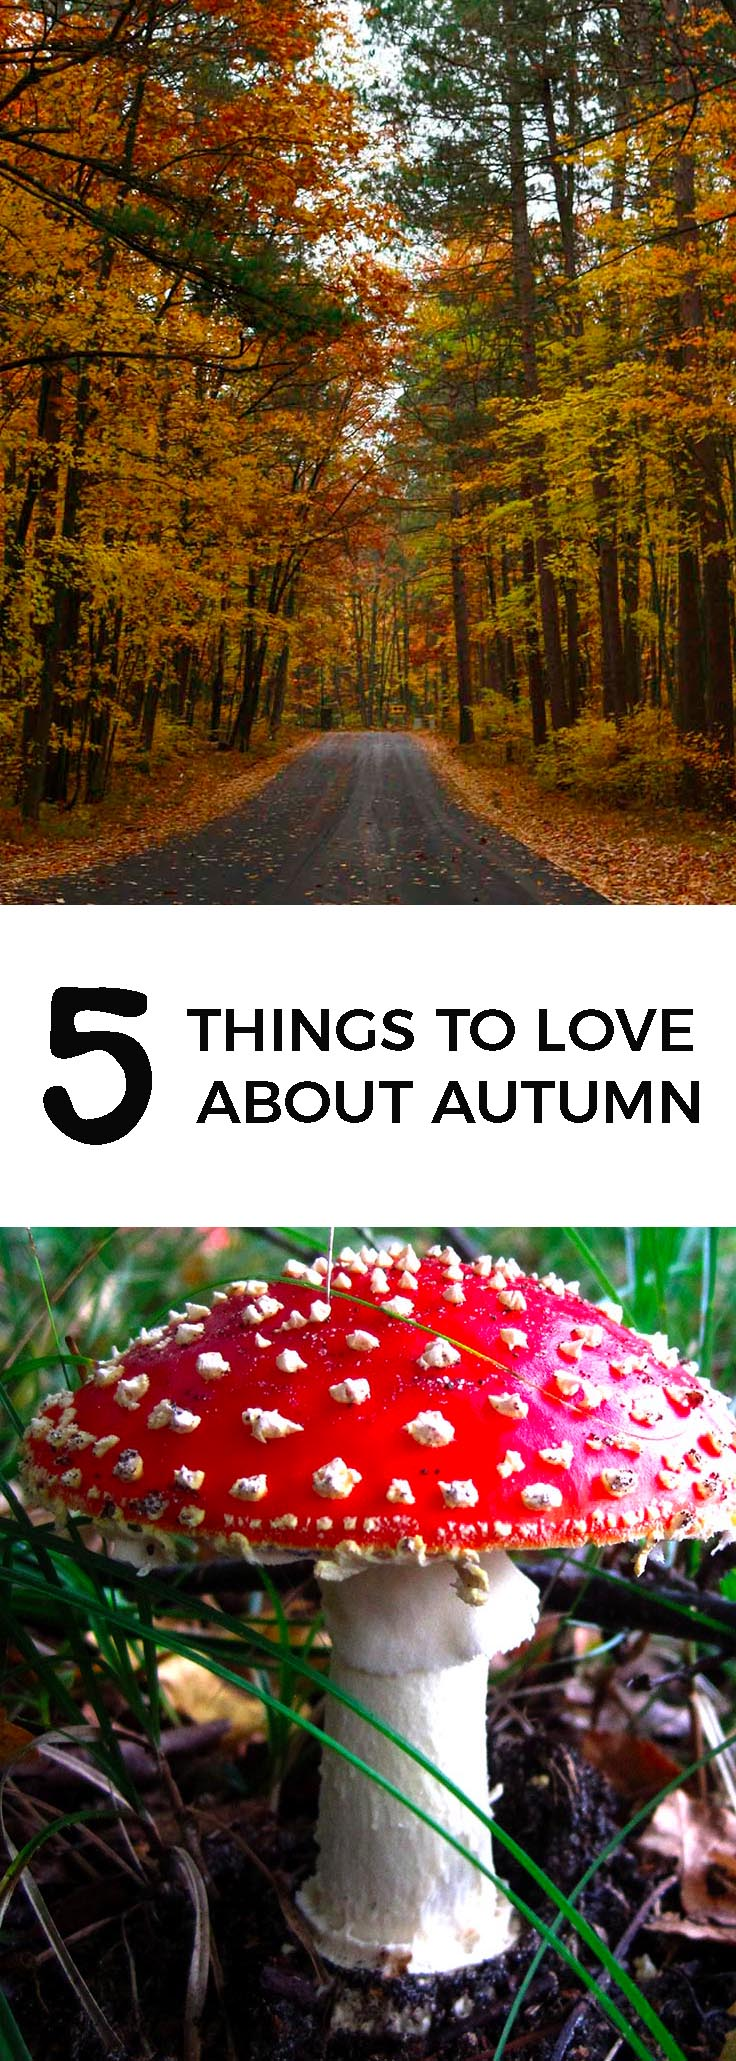 Five things to love about autumn - theweekendguide.com